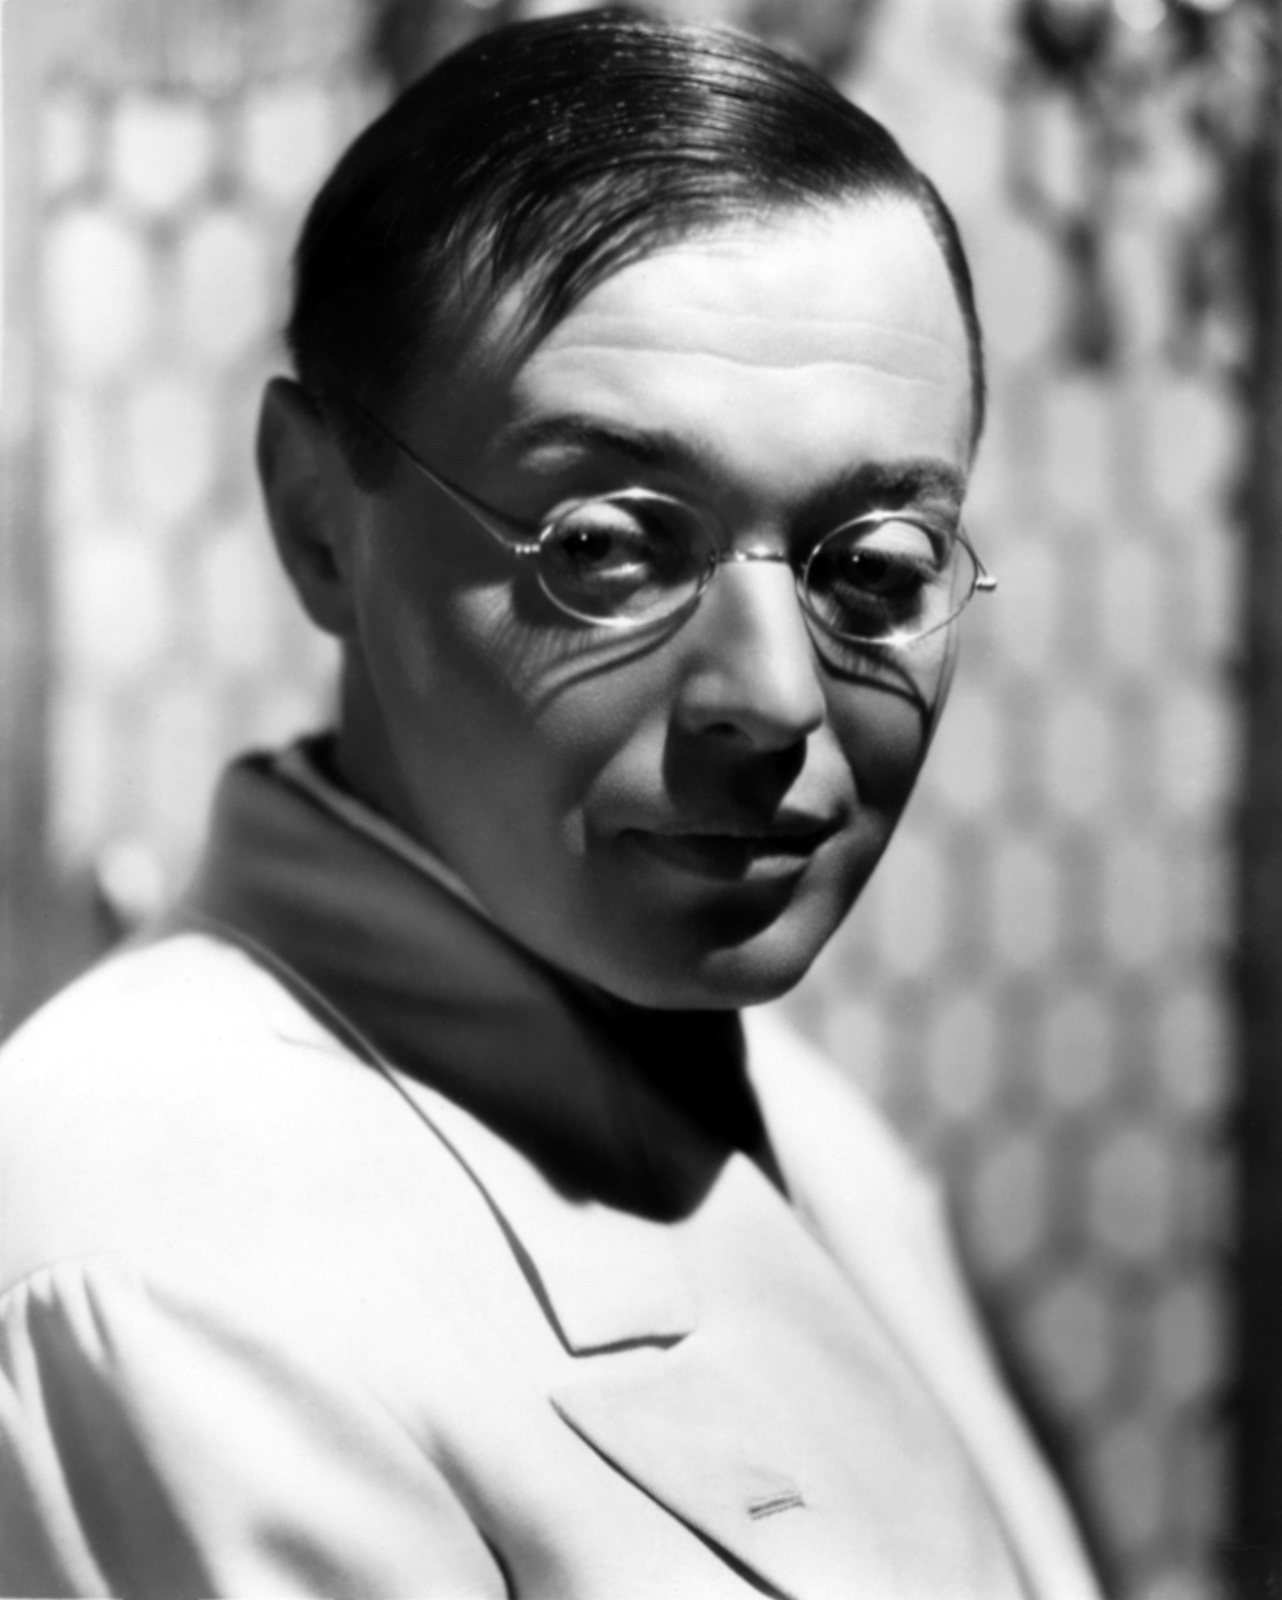 Peter Lorre as Mr Moto